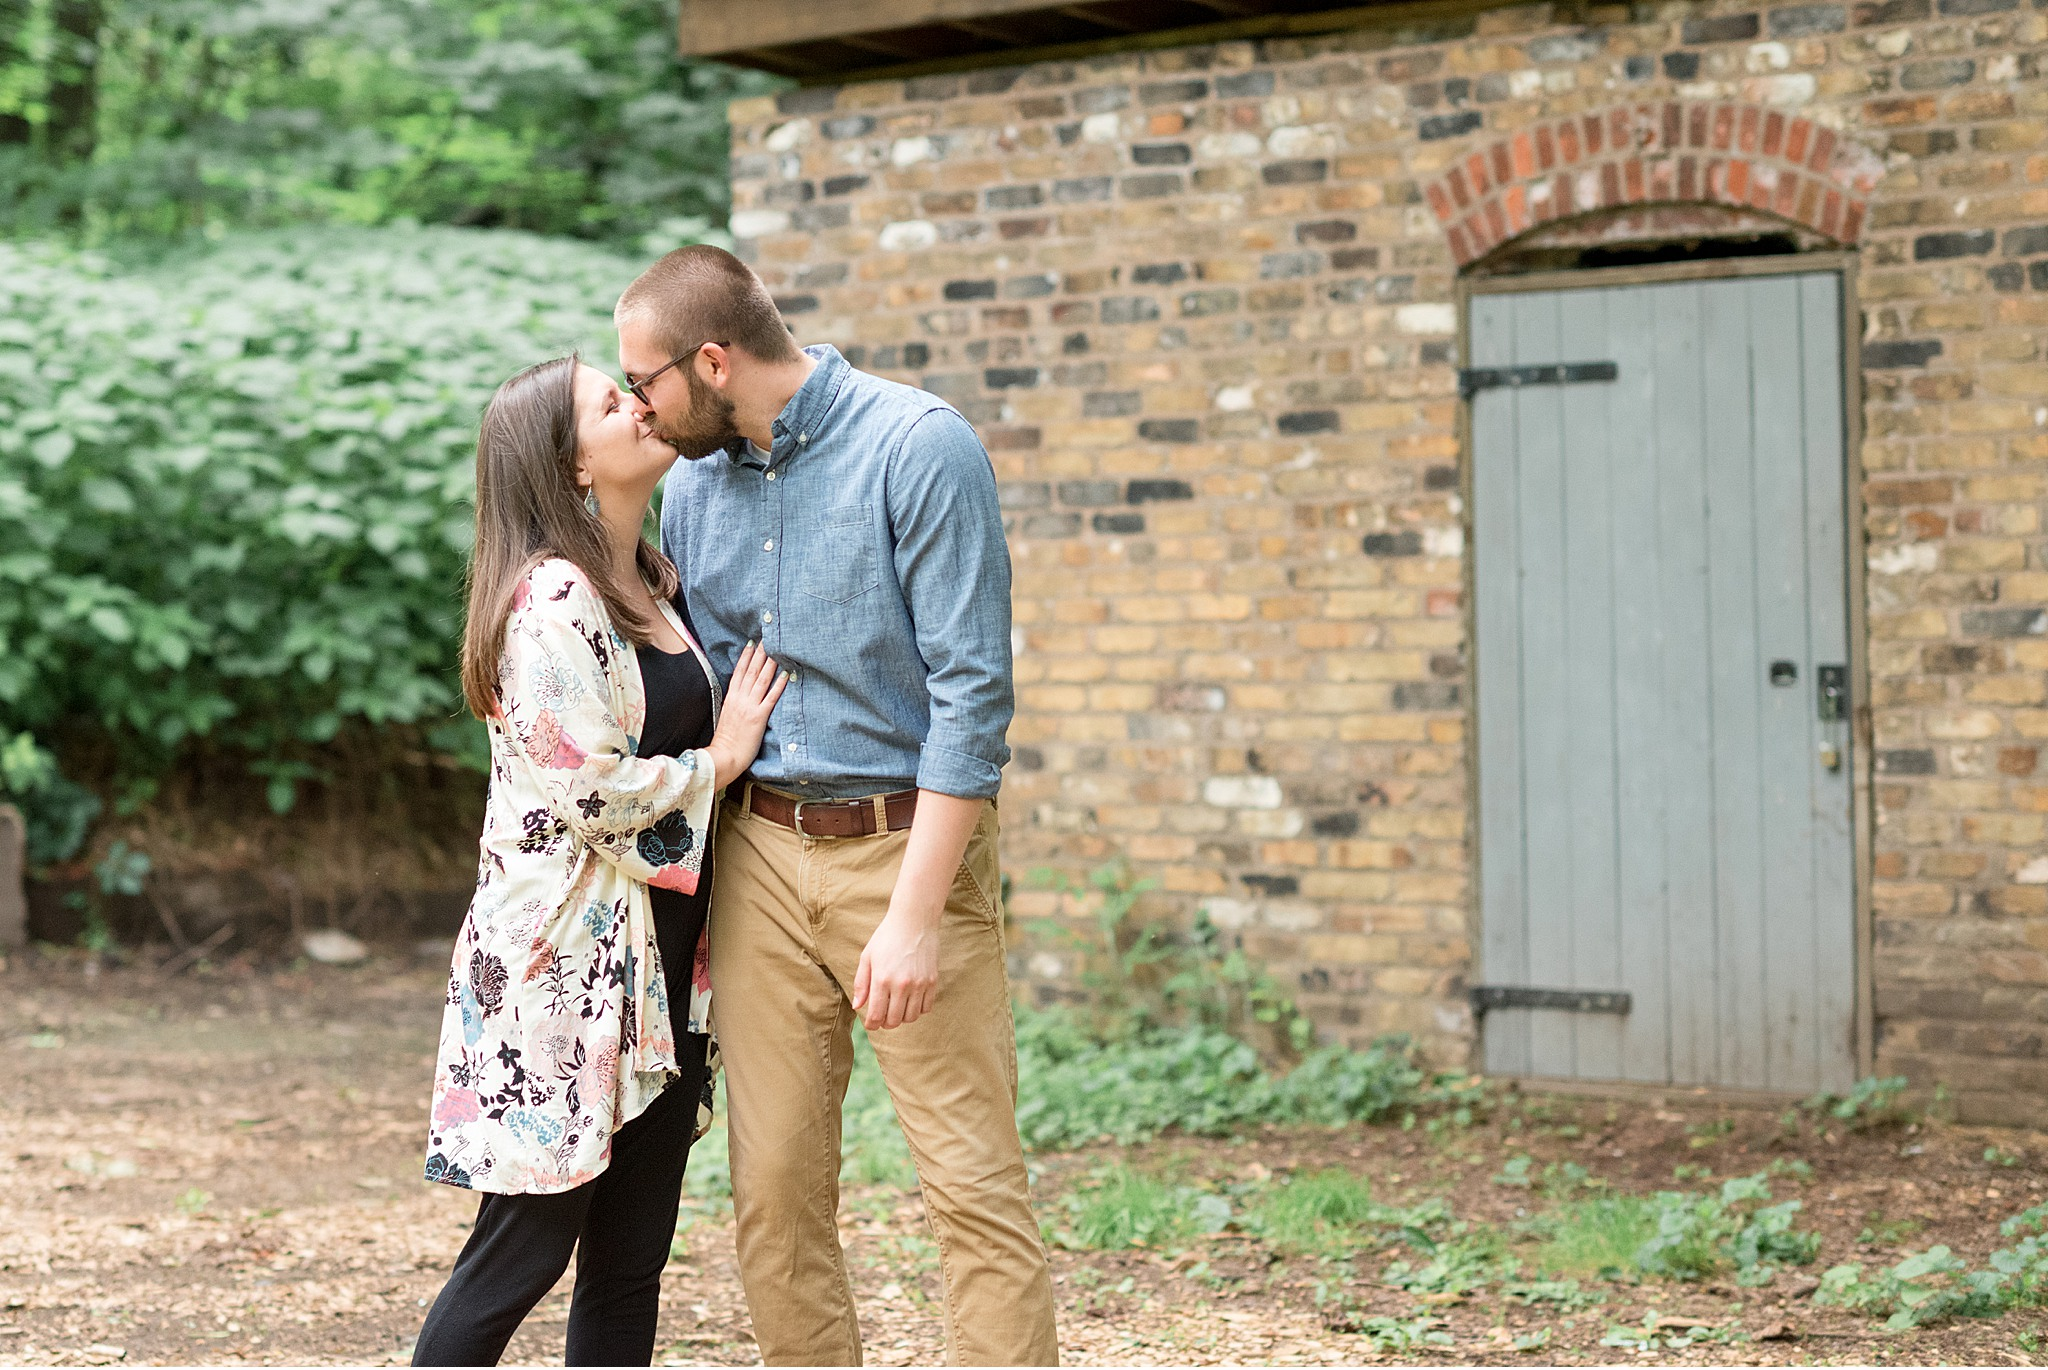 Chiques Park Marietta PA Lancaster Wedding Engagement Photographer_3655.jpg